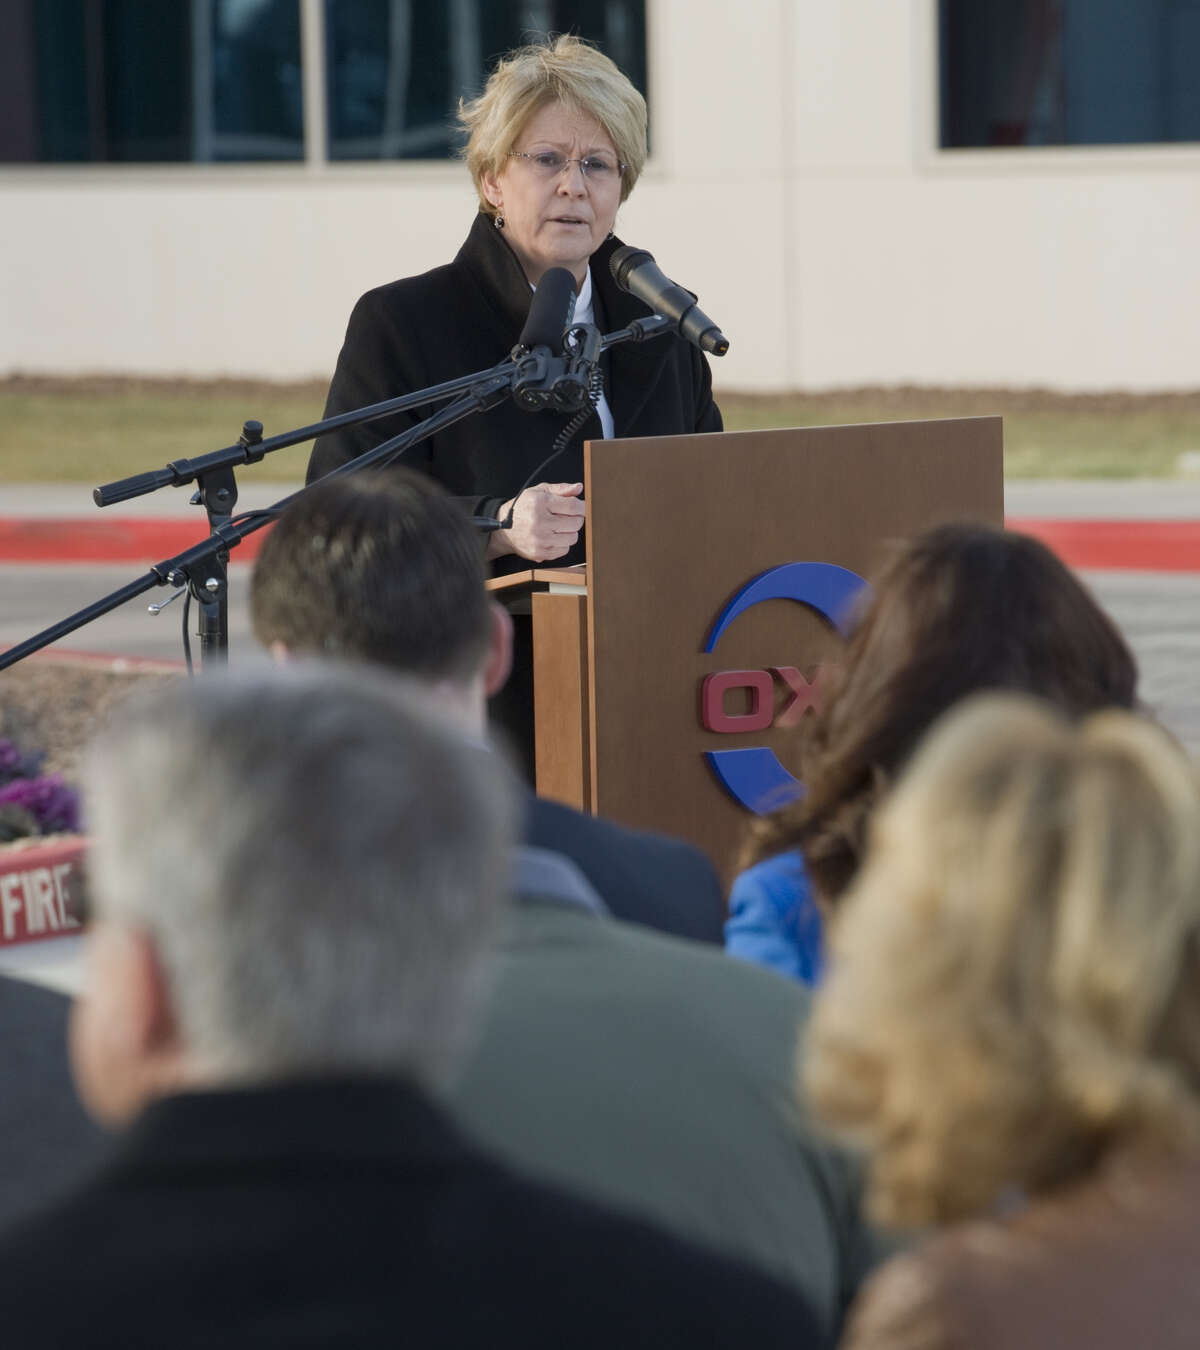 Vicki Hollub, president and CEO of Oxy, speaks Dec. 18, 2015, at the opening of the Occidental Petroleum Corp. Midland office complex. Oxy has announced a $38 billion bid to buy Anadarko.